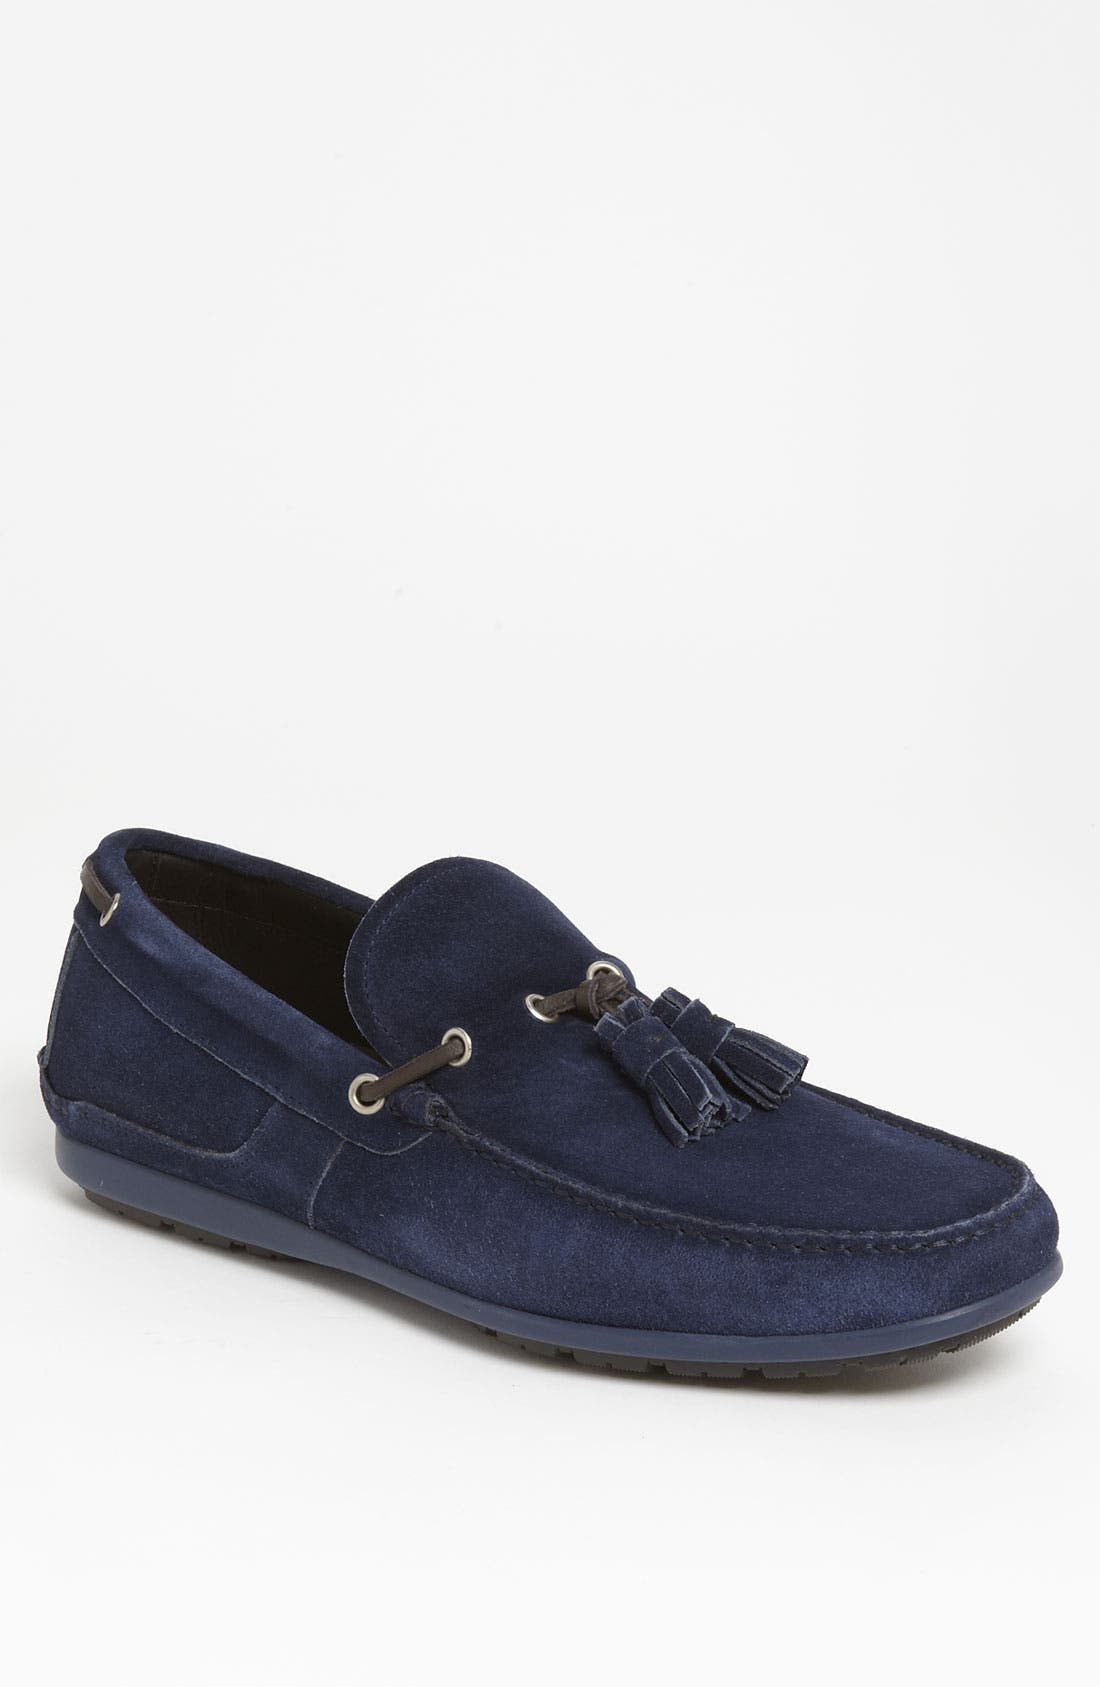 Alternate Image 1 Selected - Salvatore Ferragamo 'Amos 3' Tassel Driving Shoe